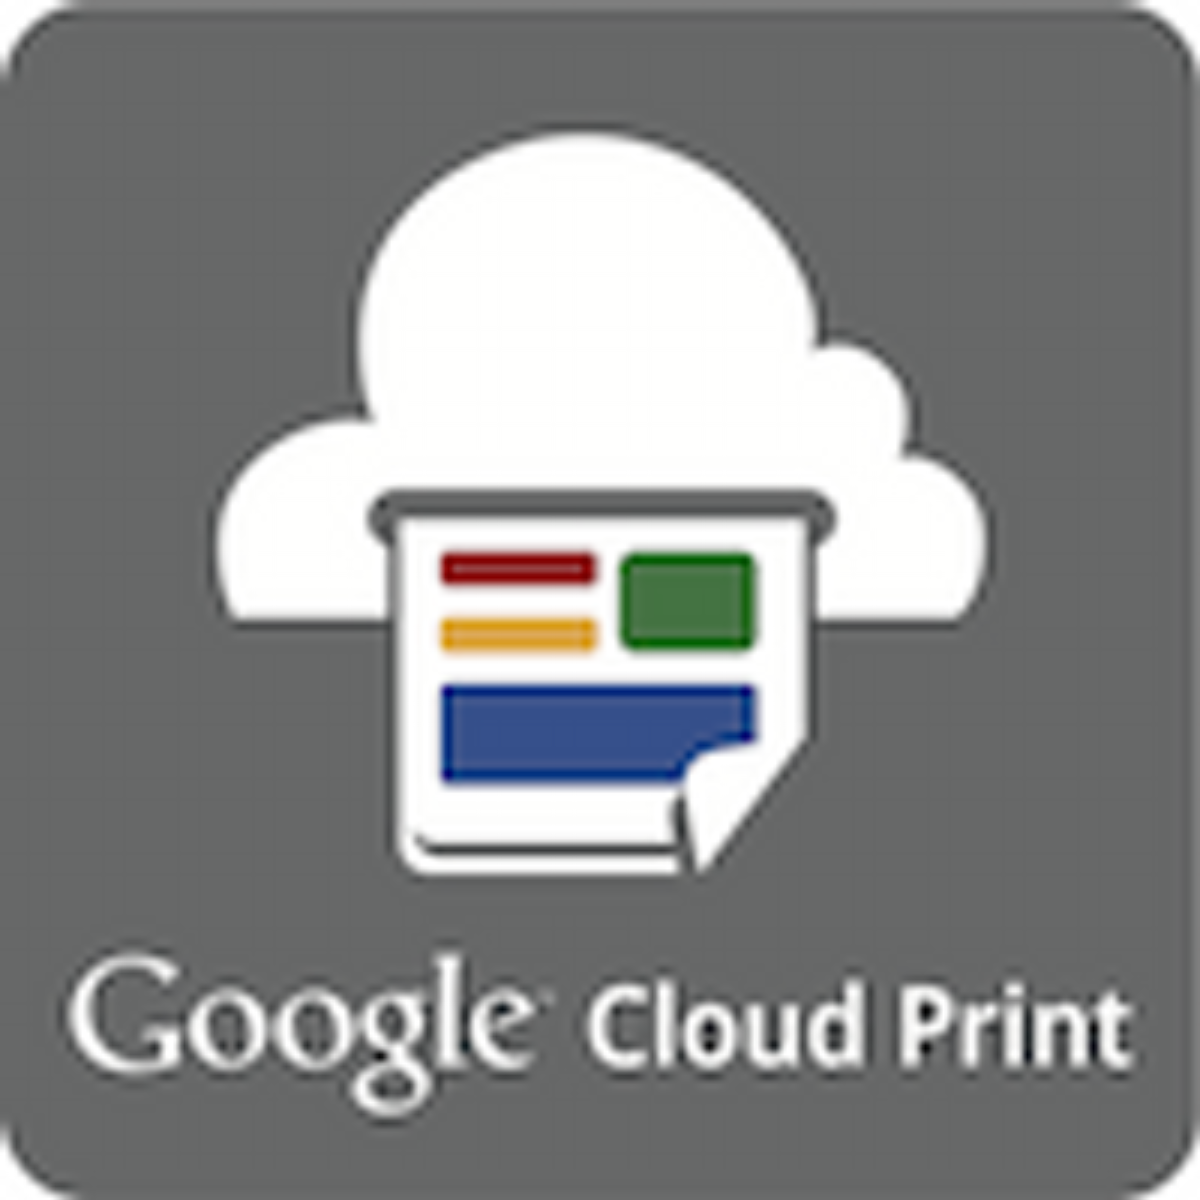 cloudprint_badge_cmyk_400x400.png